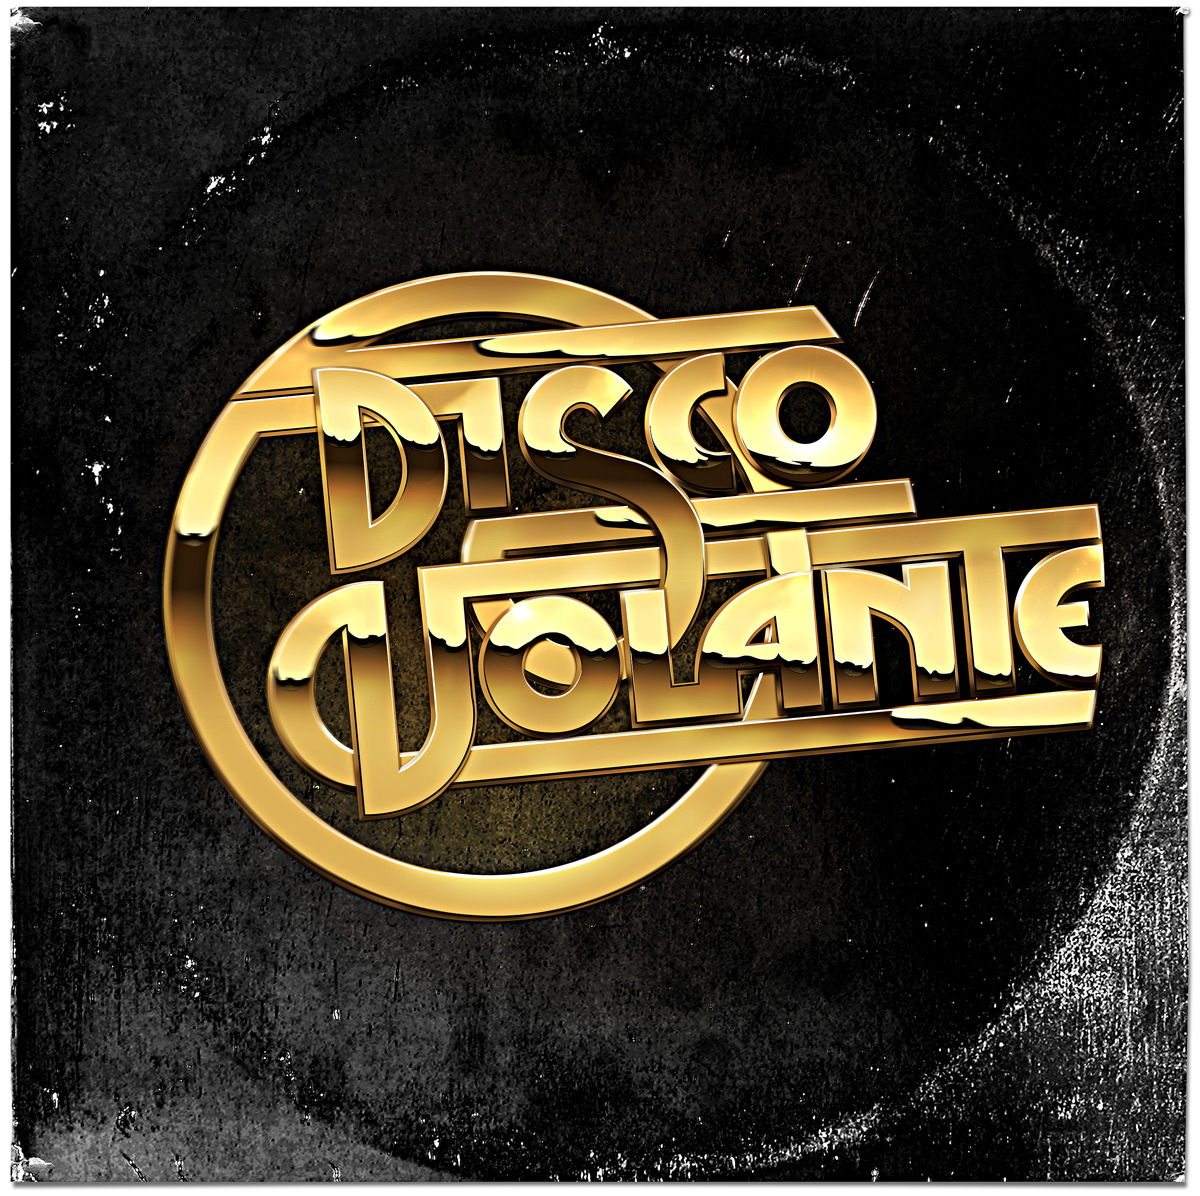 Disco Volante - A late 70's/early 80's inspired typographic piece. I wanted to work with some gold and badly dated fonts to create something that could look straight off an LP record cover.